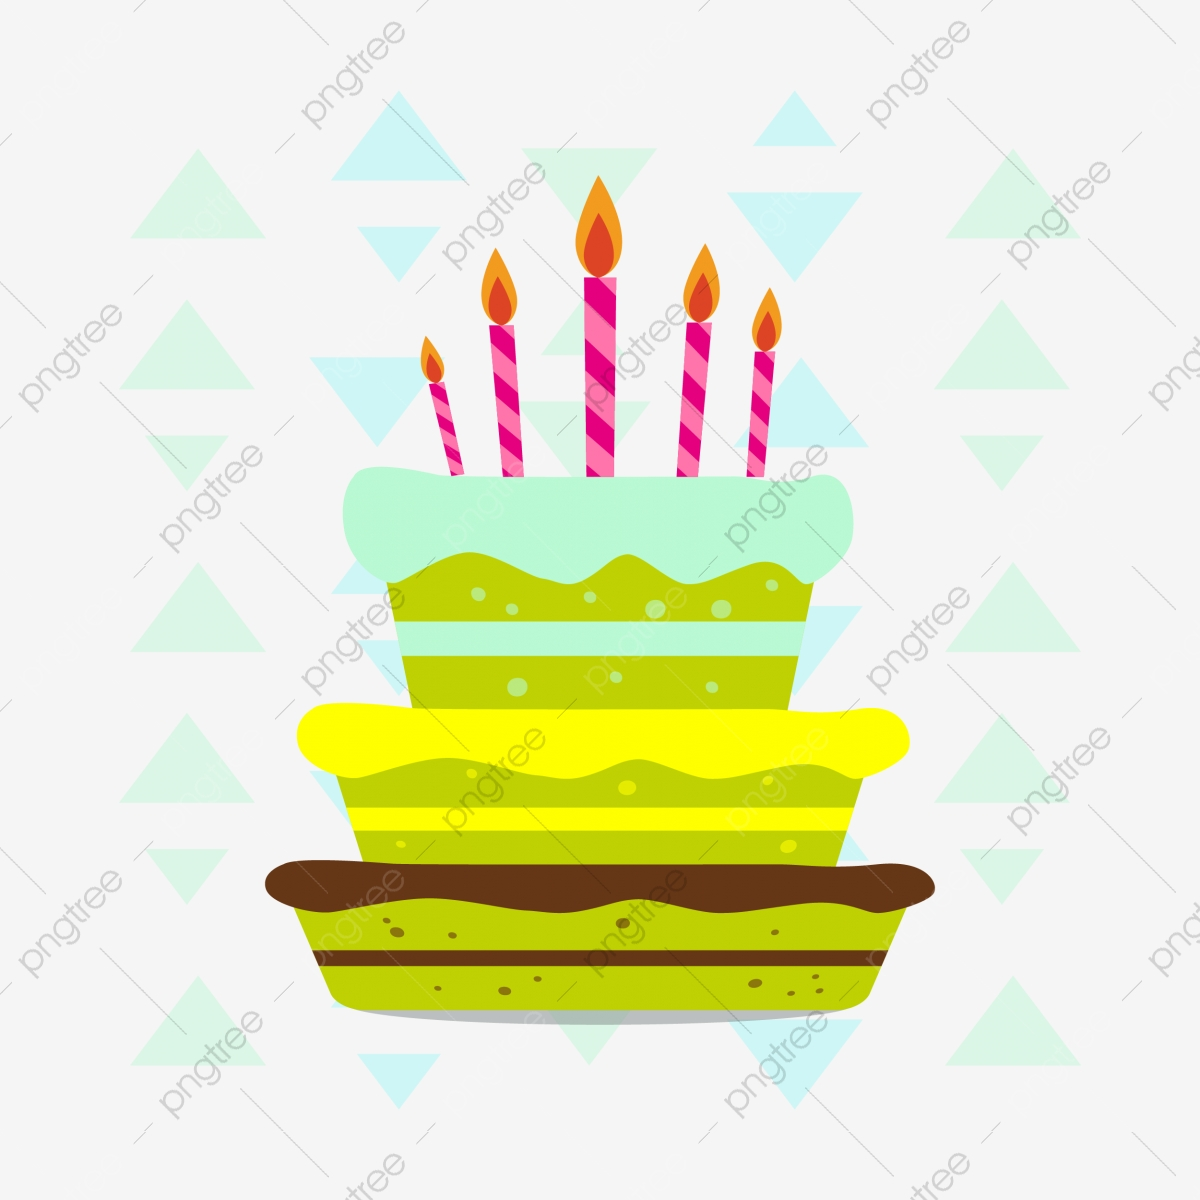 Sensational Birthday Material Cartoon Fresh Illustration Flat Vector Graphic Funny Birthday Cards Online Alyptdamsfinfo